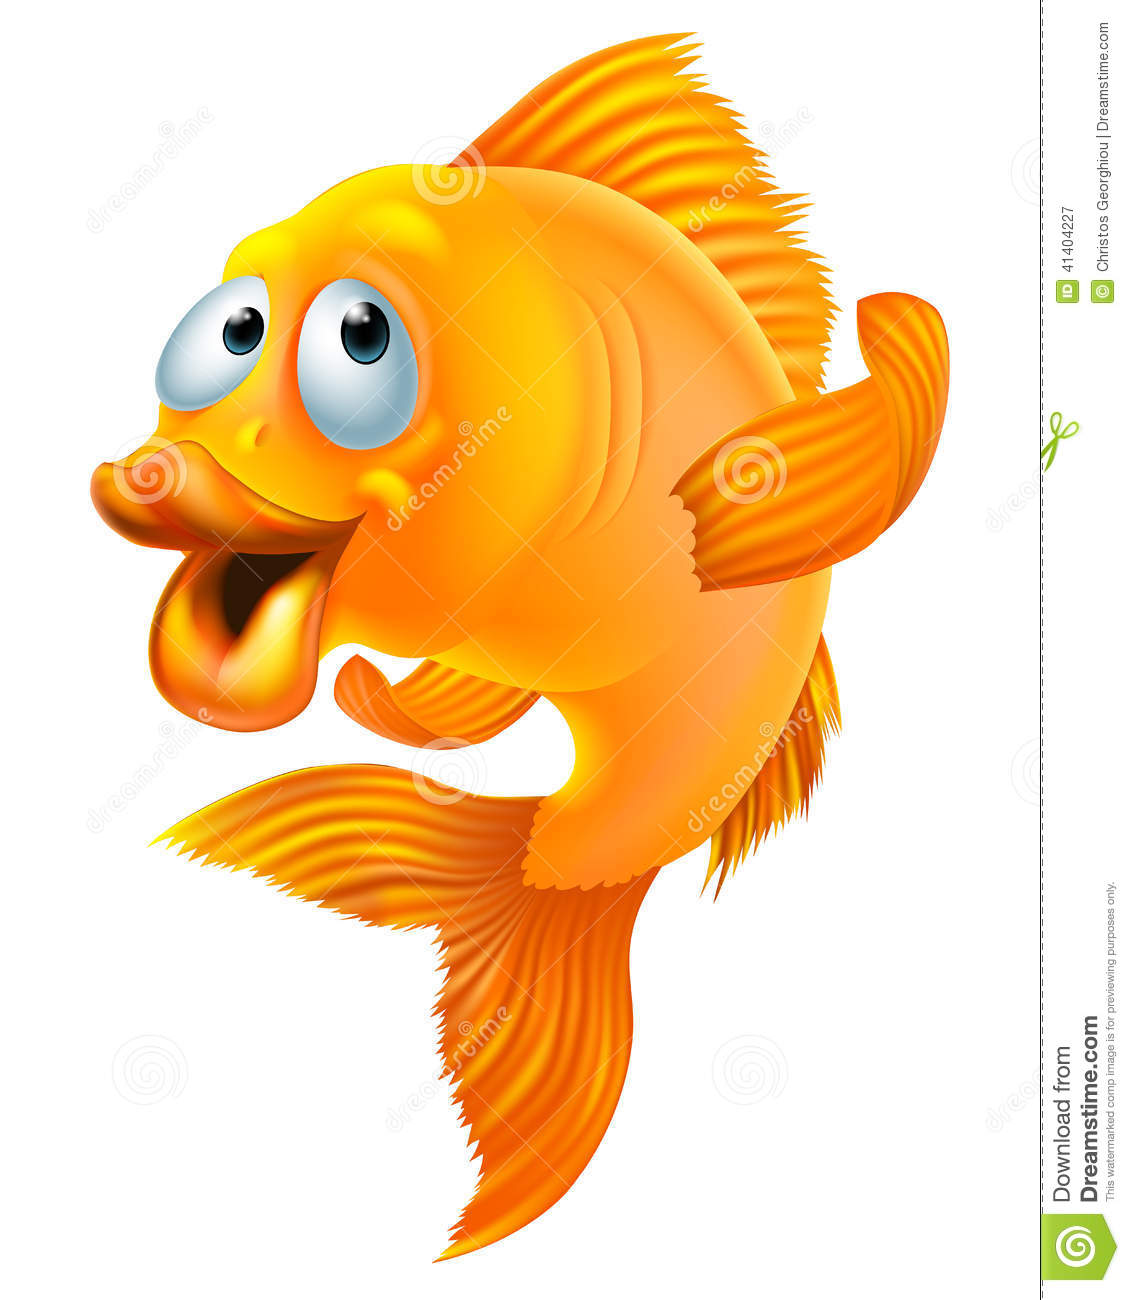 An illustration of a happy goldfish cartoon character waving.